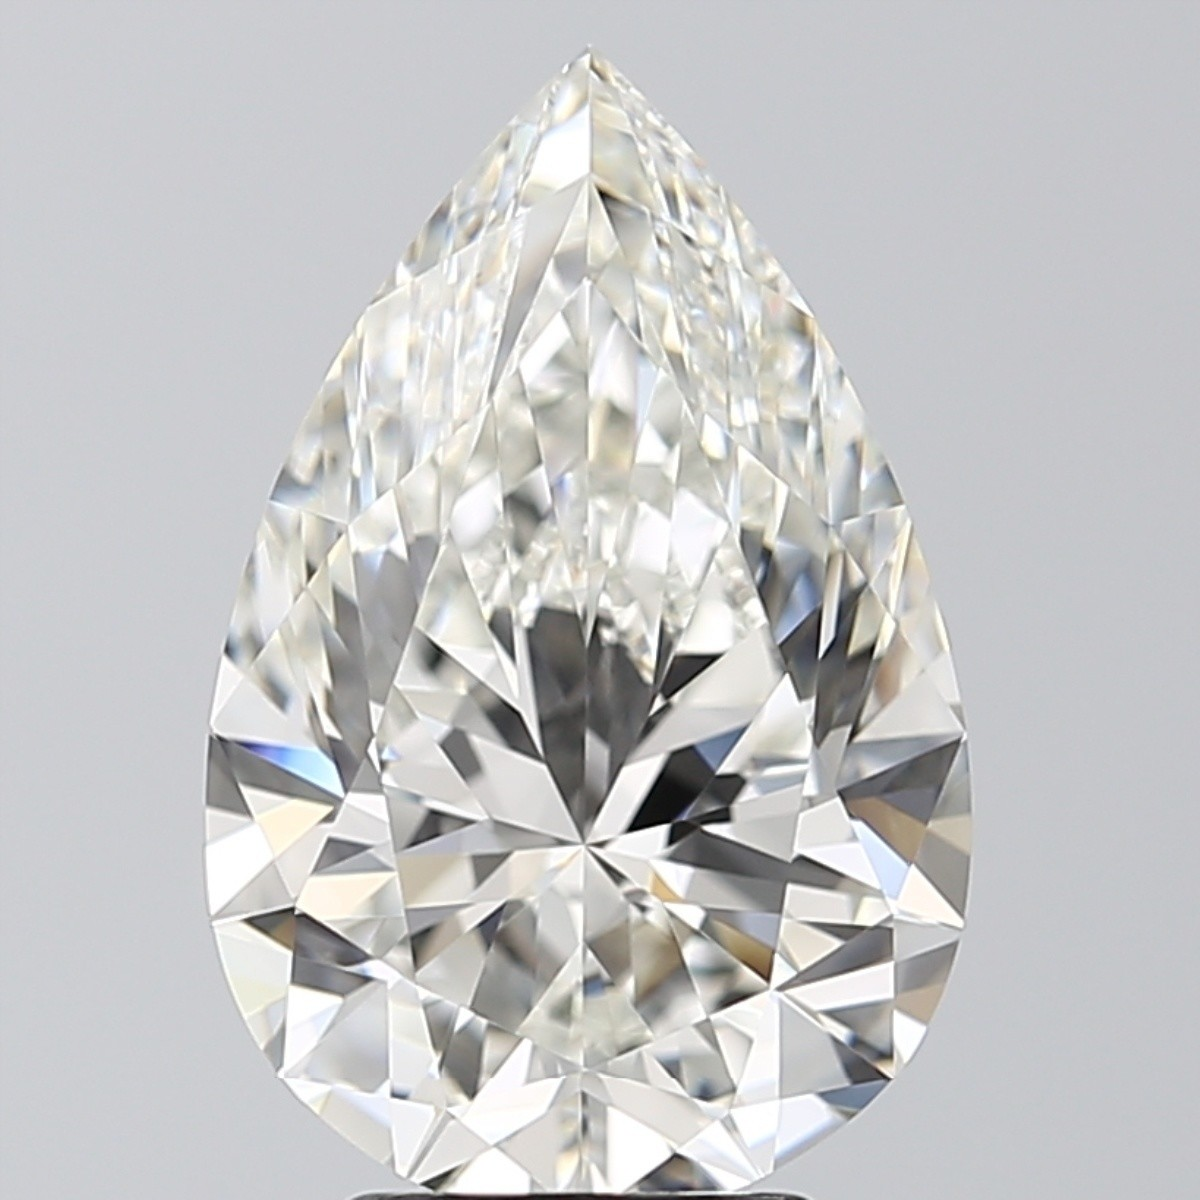 4.04 Carat Pear Diamond (H/IF)